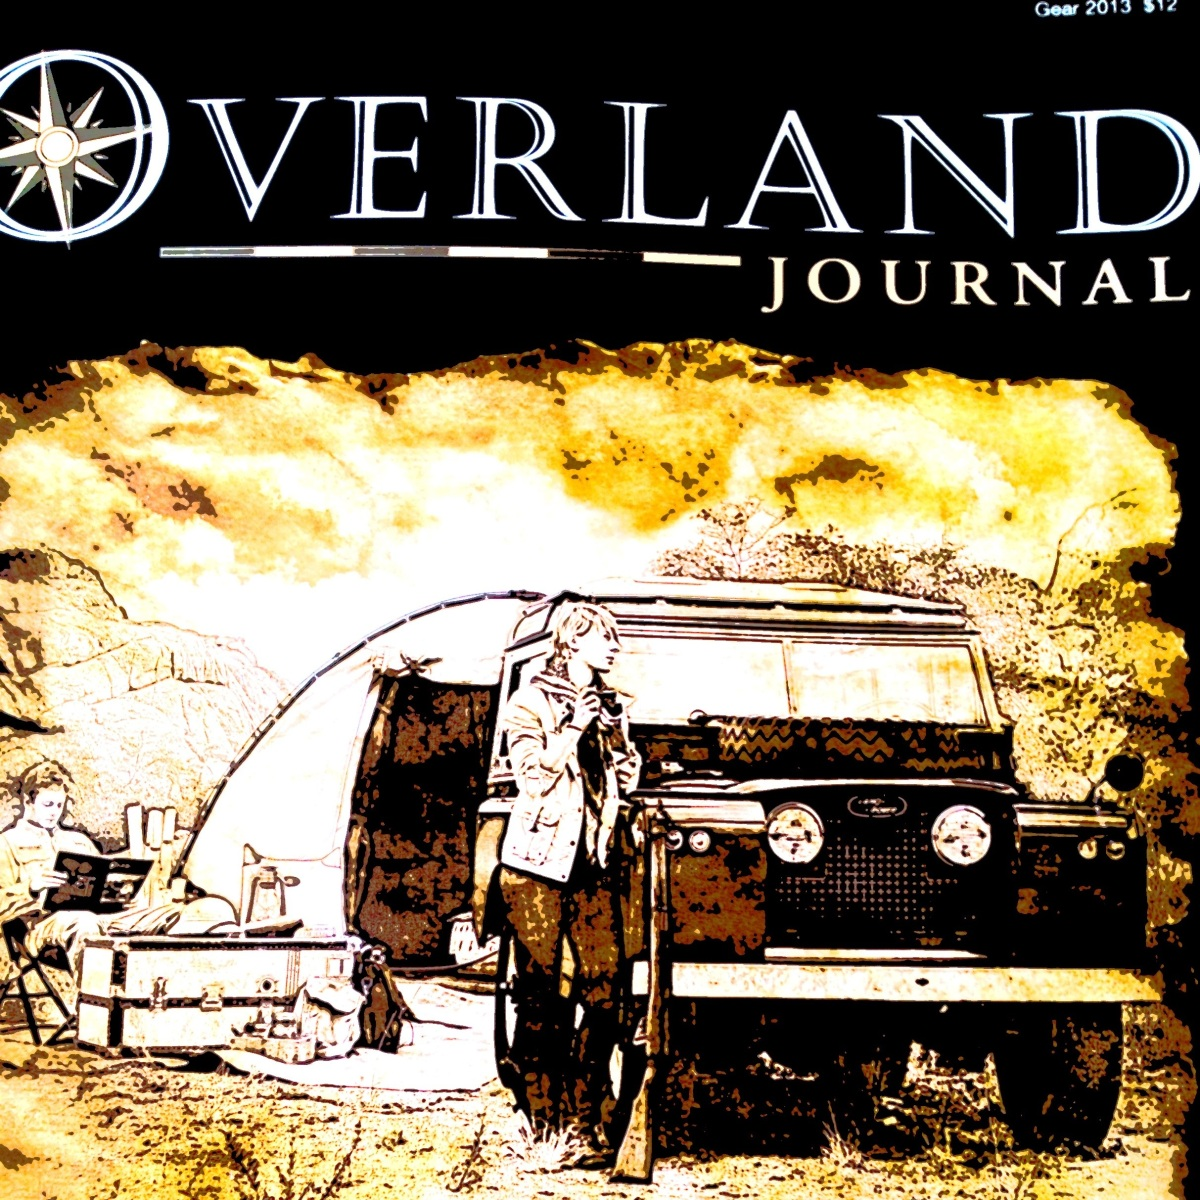 Overland Journal and my new obsession